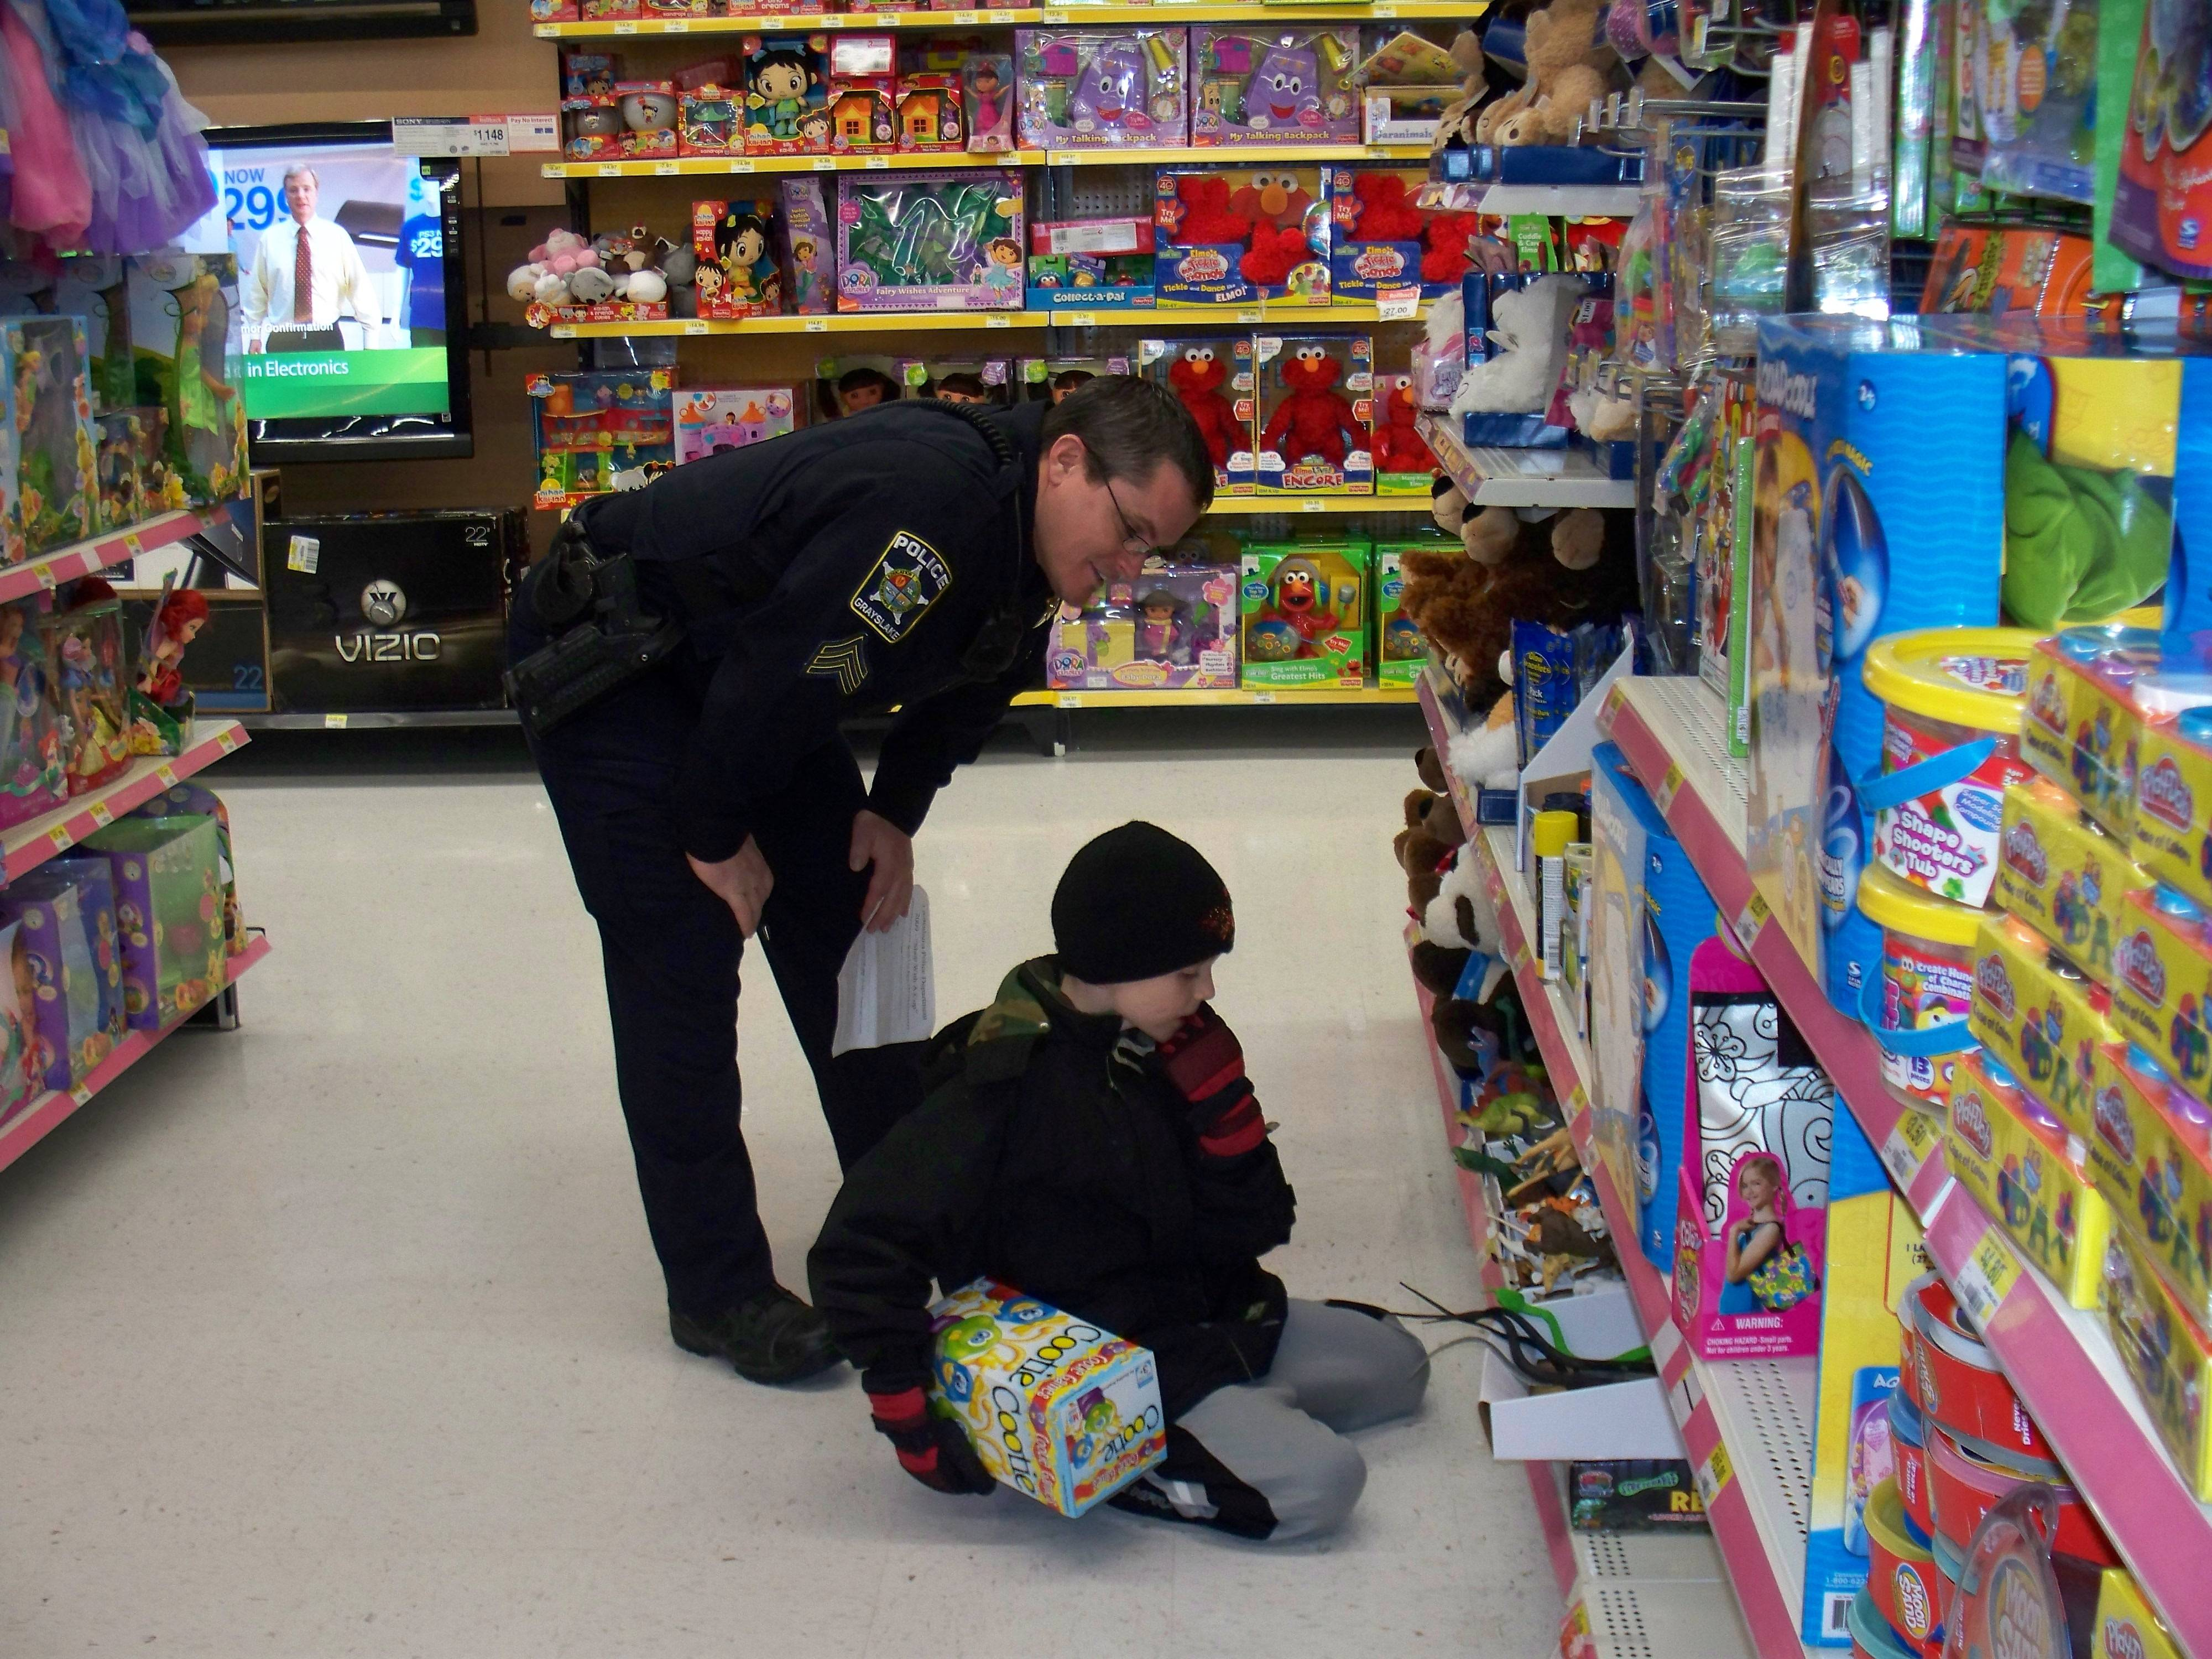 Officer Foy helps a child contemplate a purchase.